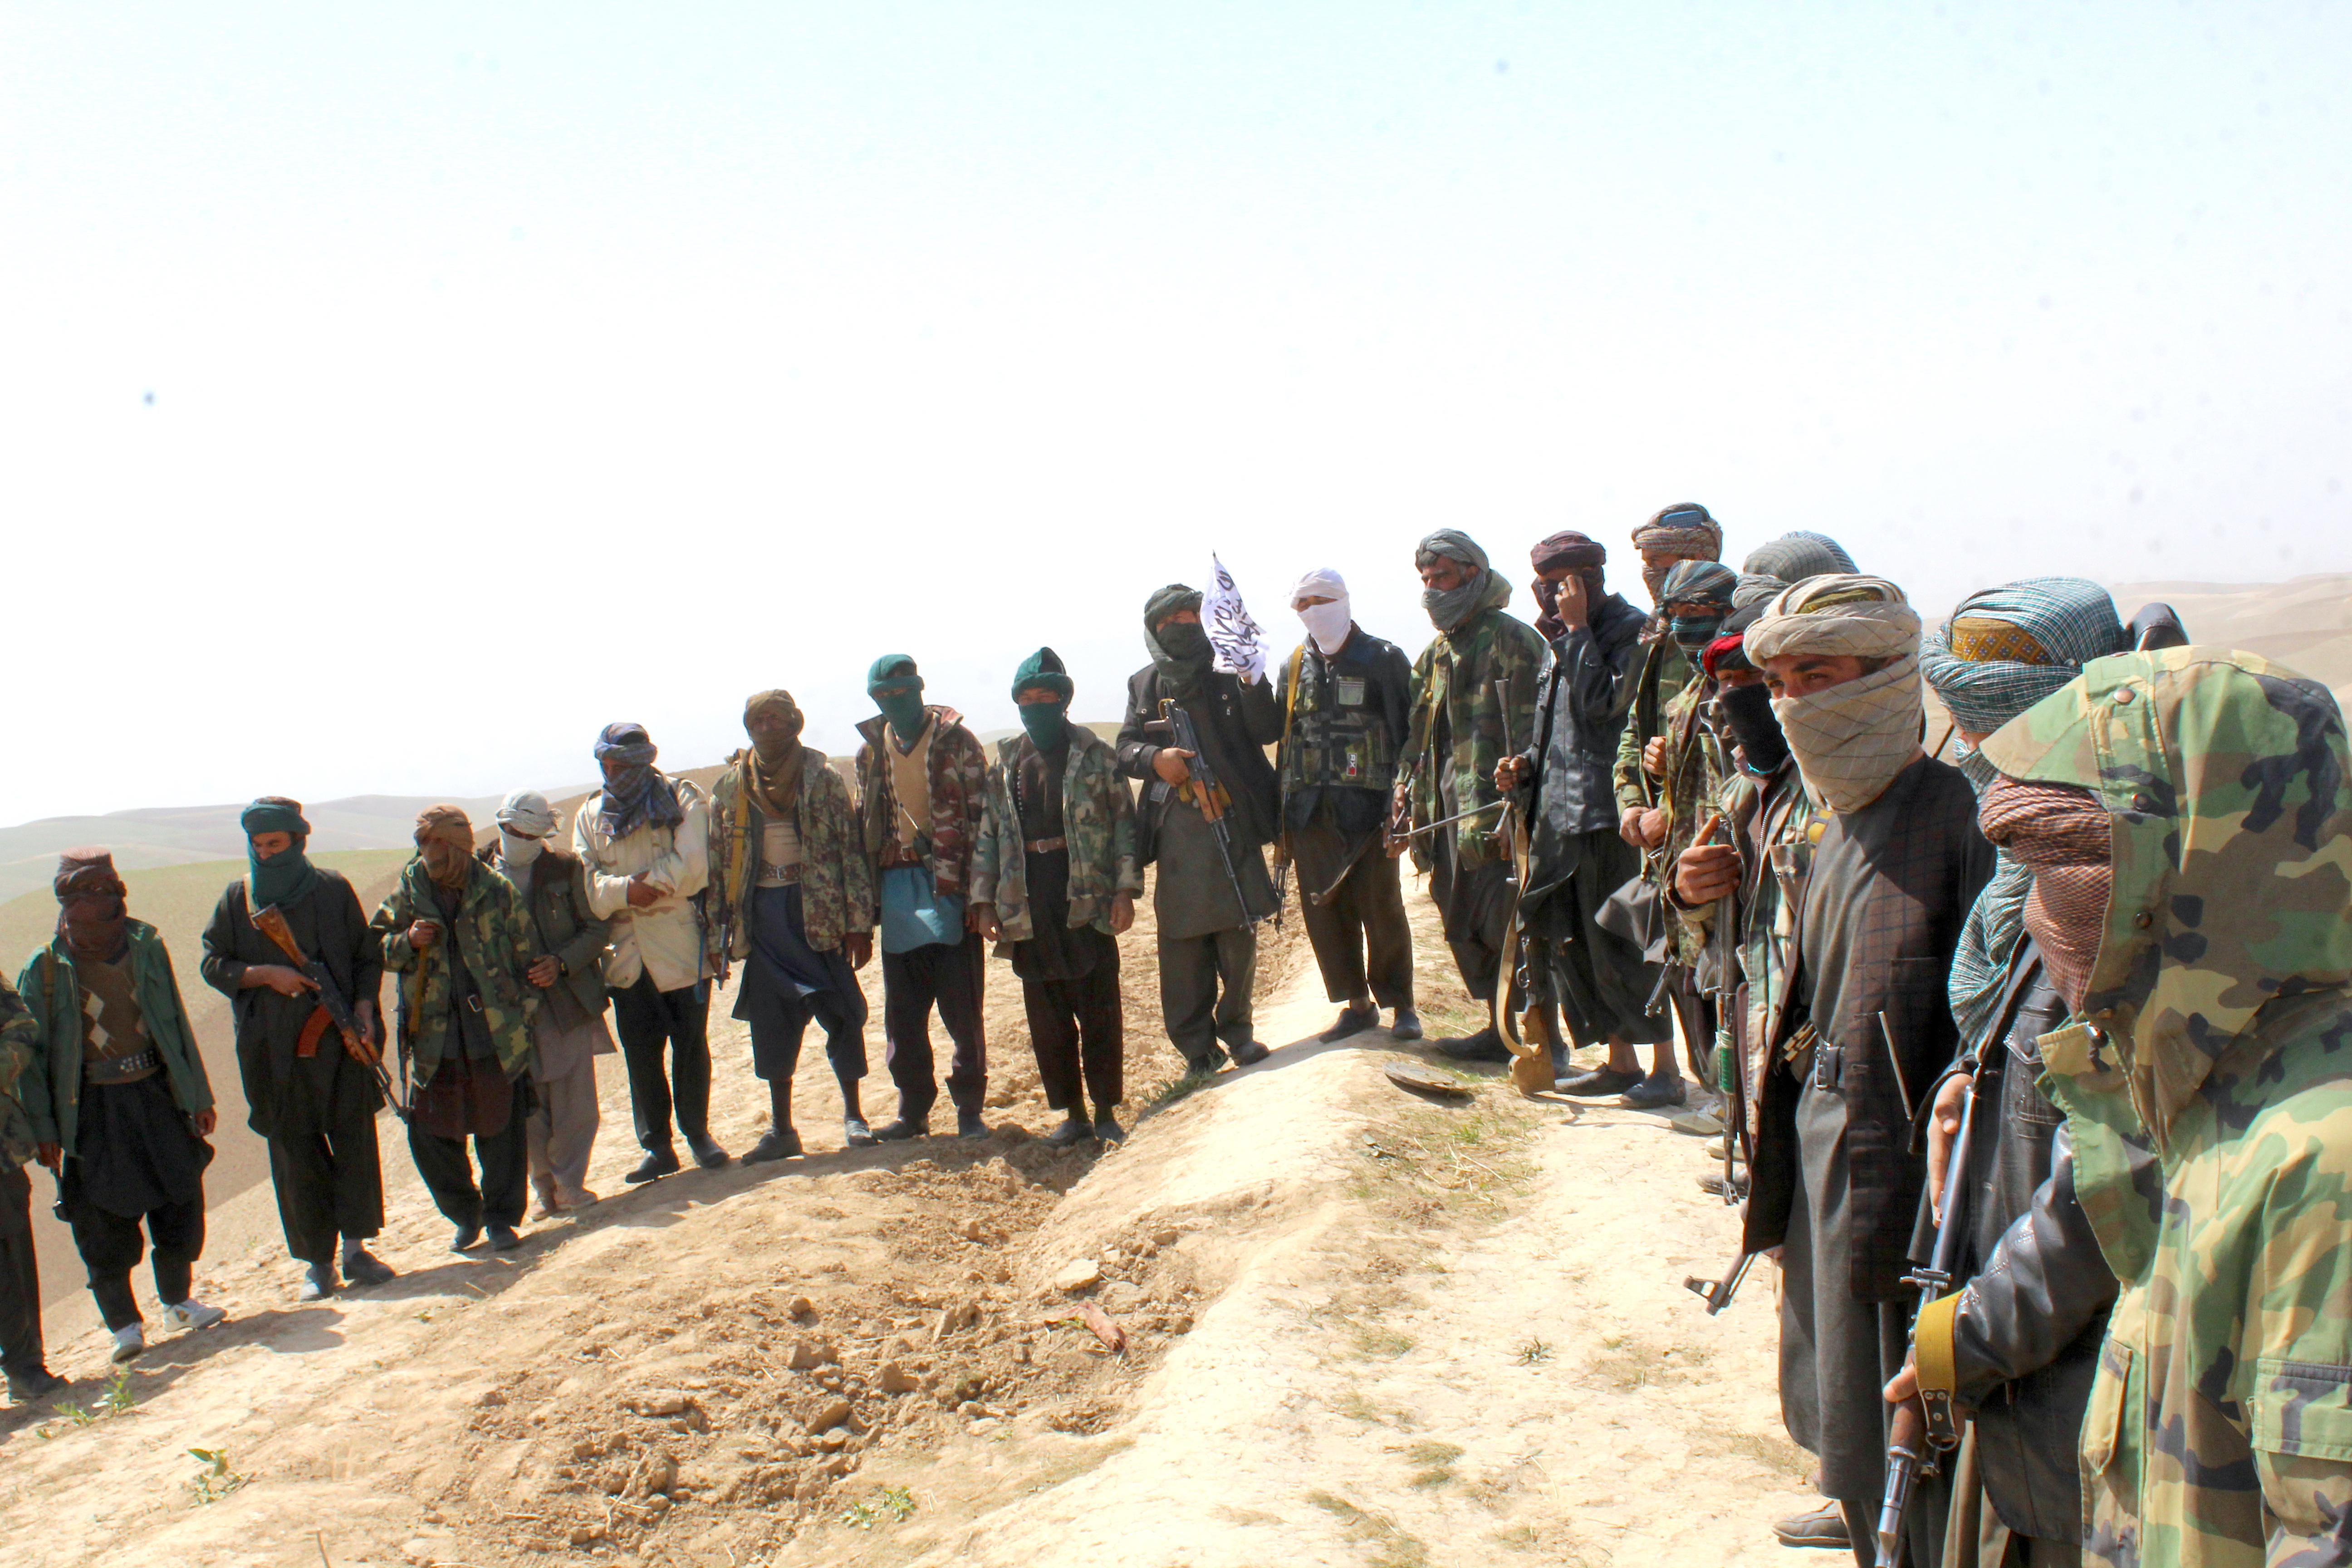 Divided Taliban in secretive cease-fire talks with Afghan officials: US general